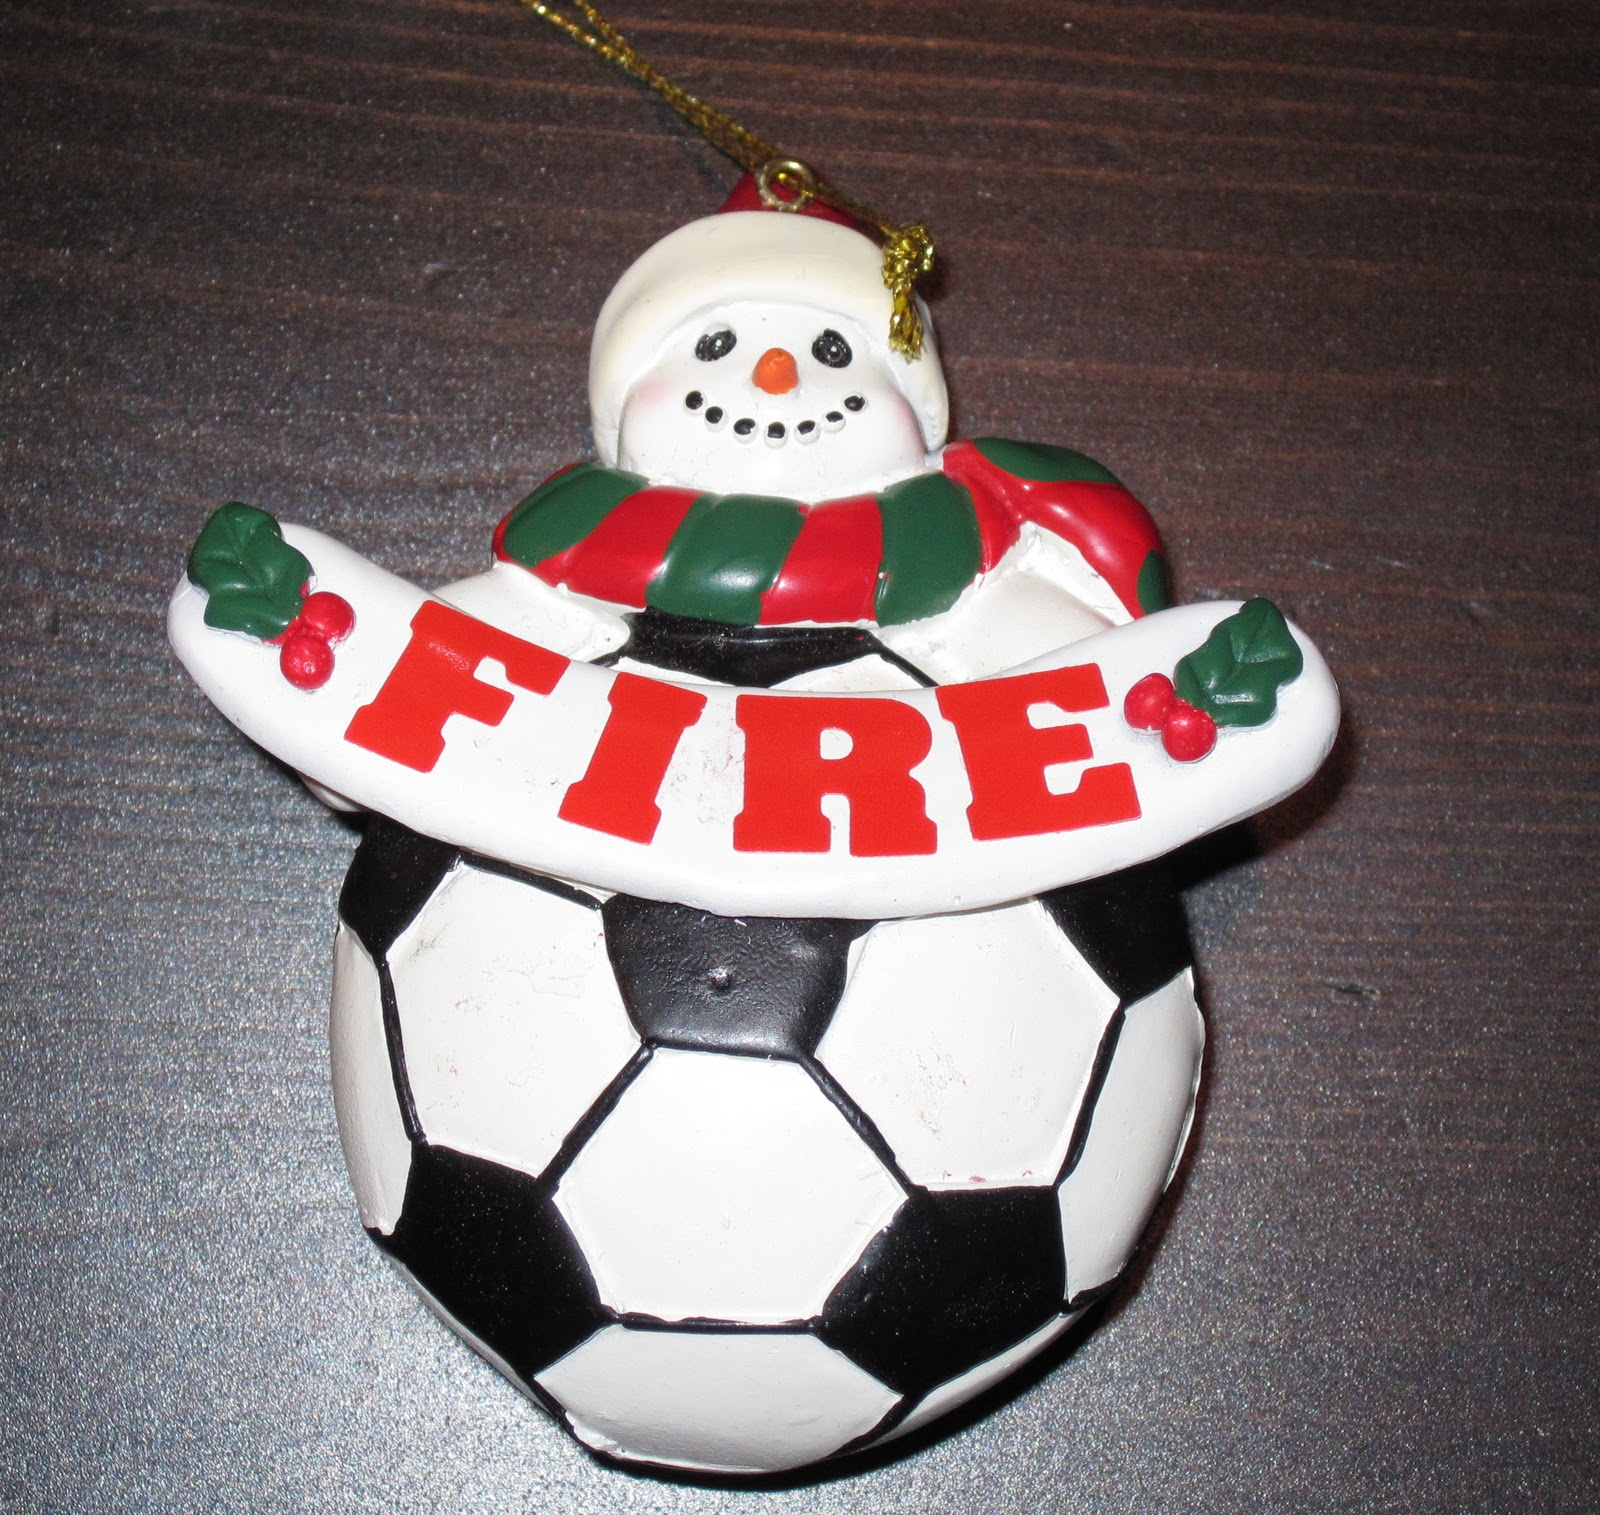 Soccer ornaments - Chicago Fire Soccer Ornaments